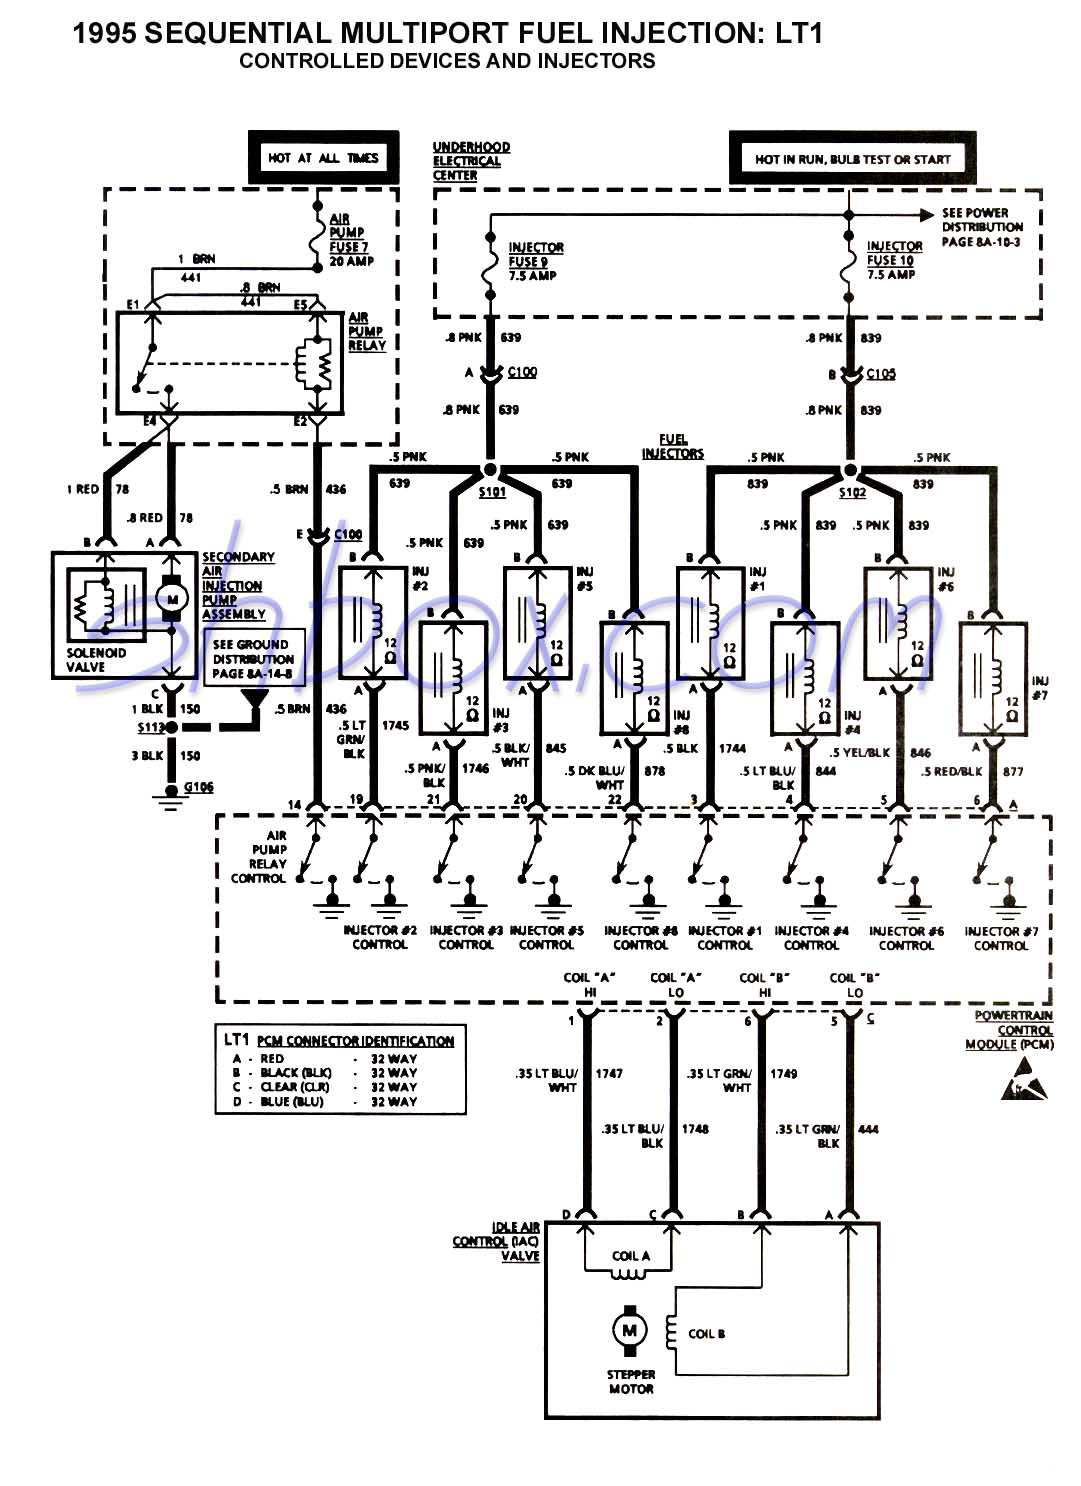 hight resolution of pcm wiring schematic detailed schematics diagram rh keyplusrubber com 2002 chevy impala bcm diagram 2009 chevy